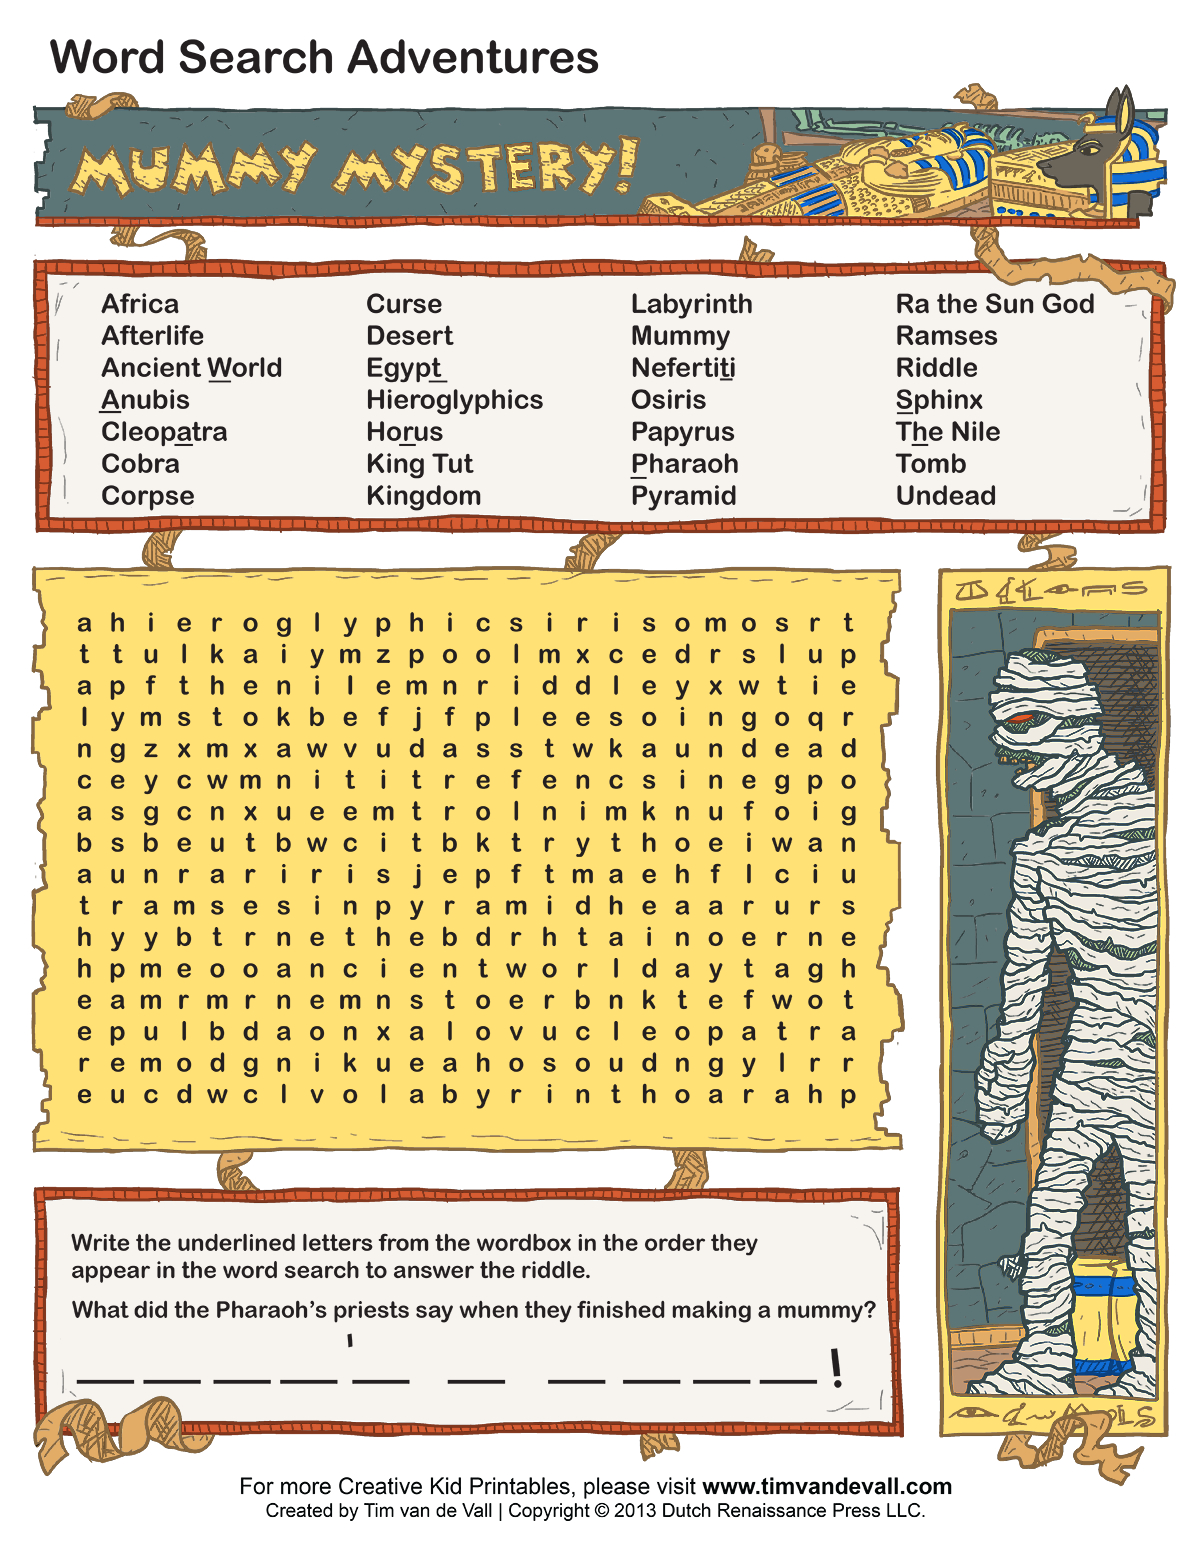 Free Printable Word Searches For Kids   Adventure Theme Games For - Printable Lexicon Puzzles